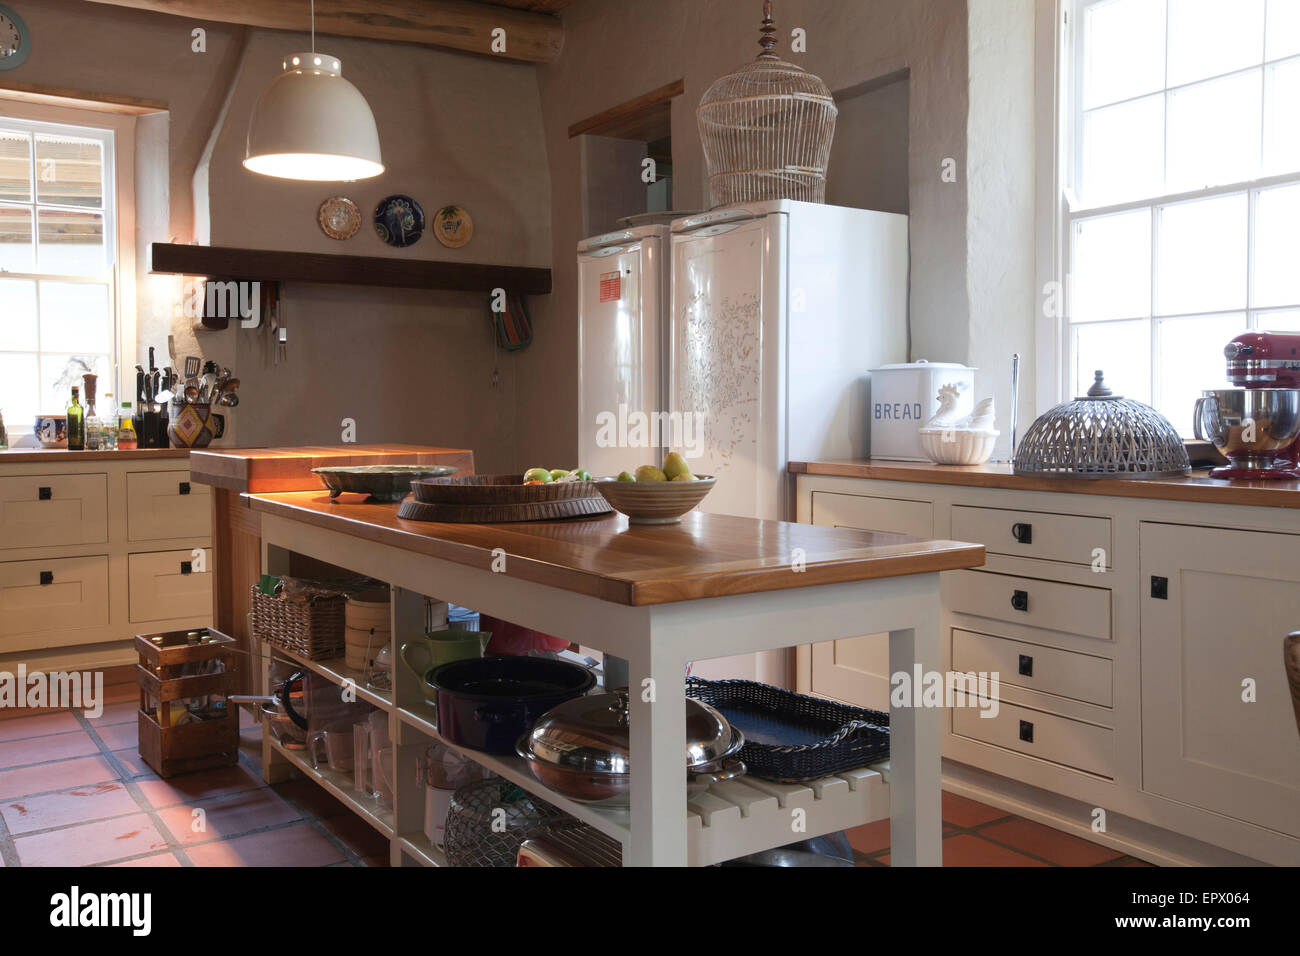 farm style kitchen with wooden island displaying various pots in